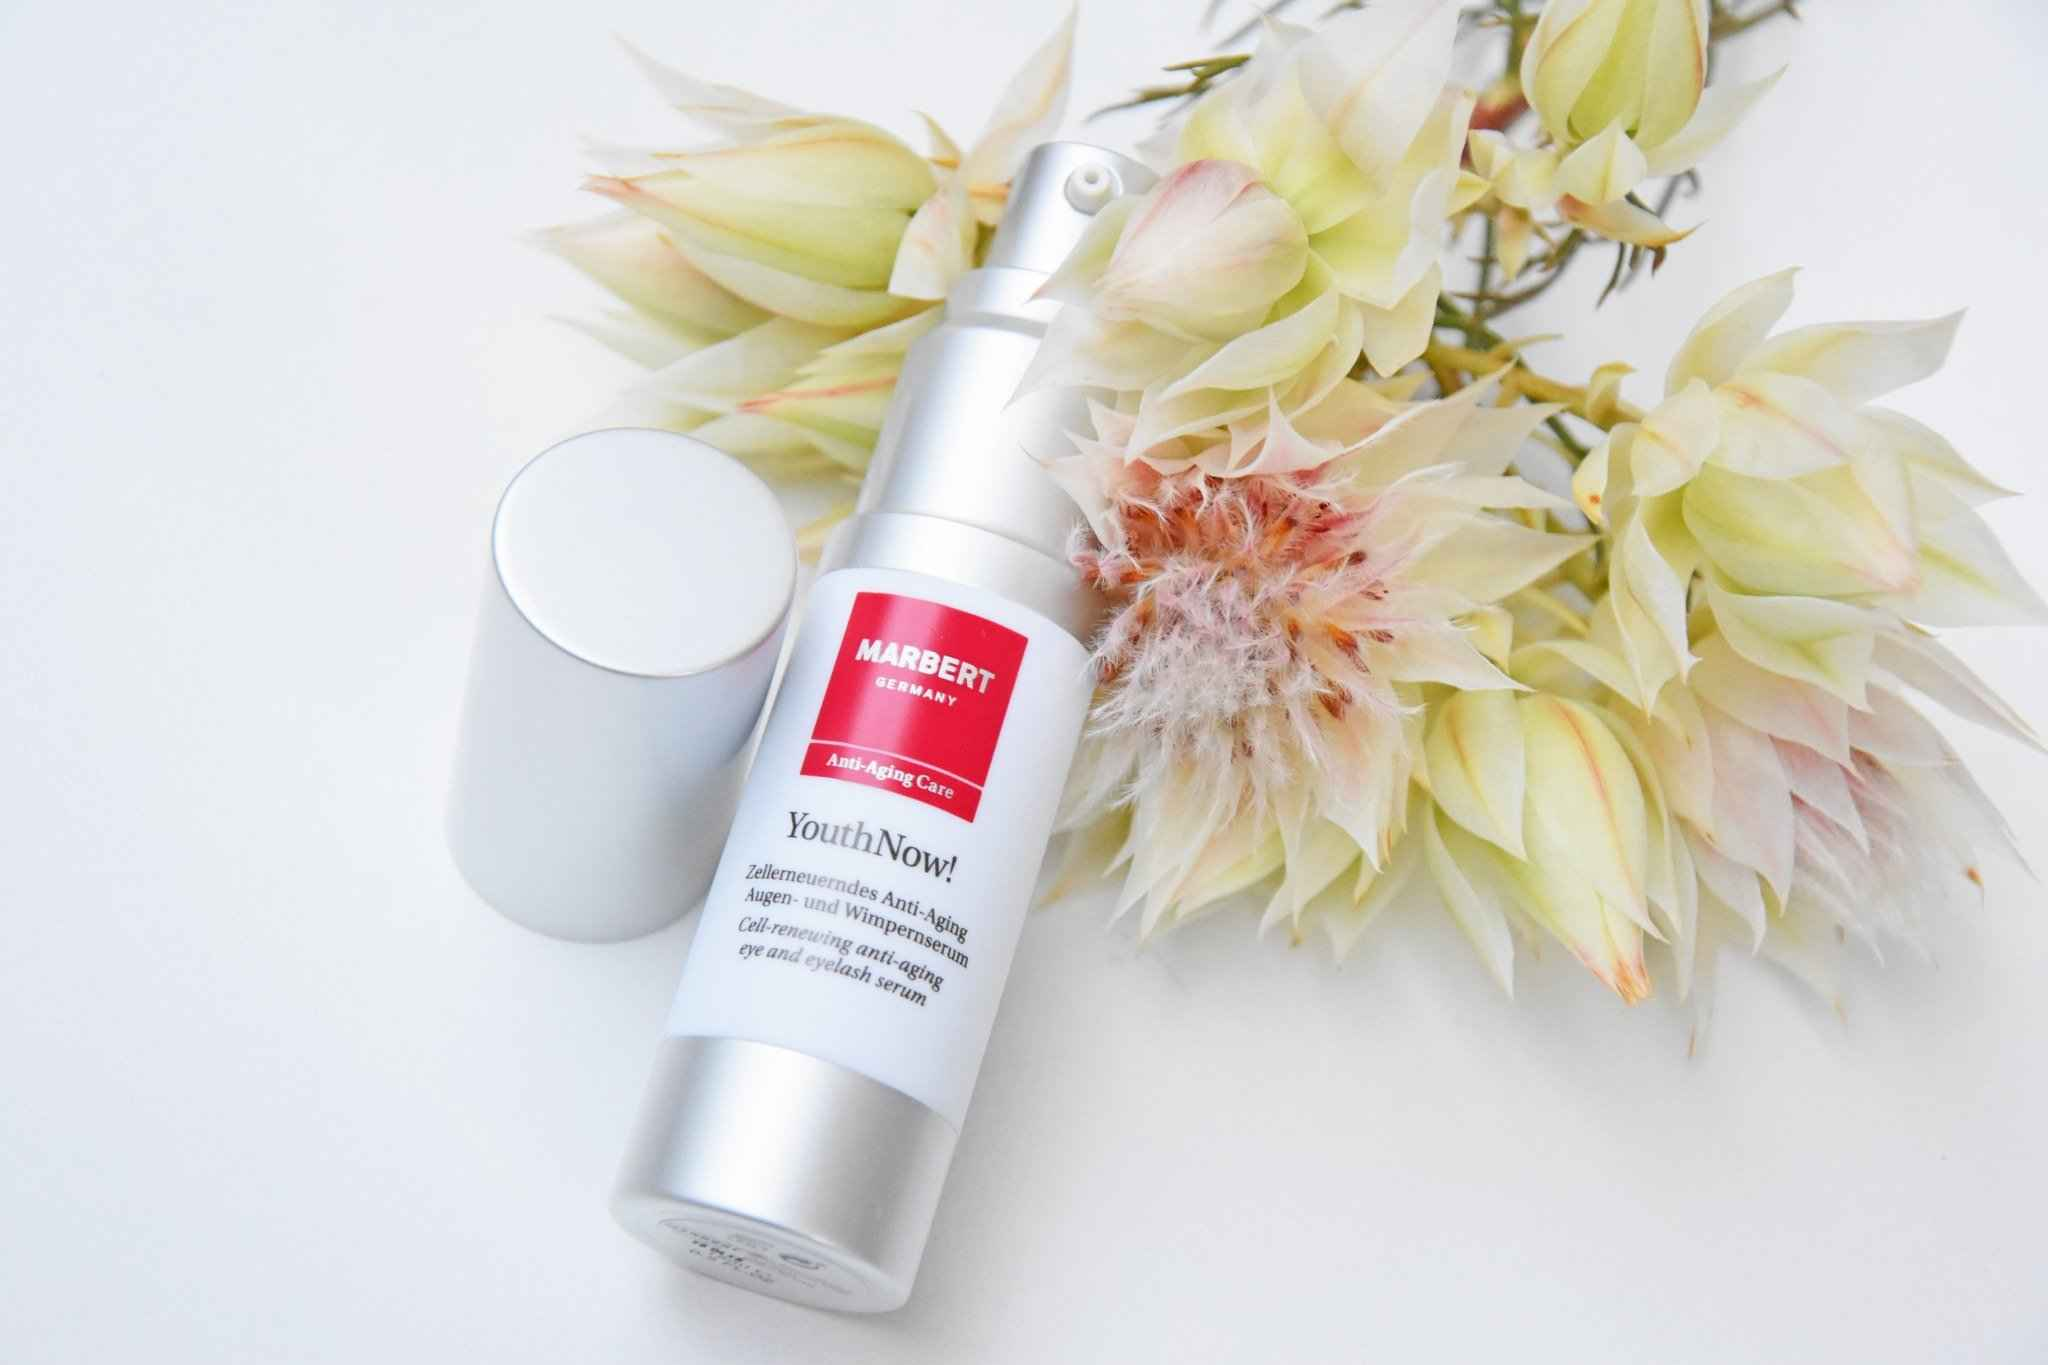 Marbert - Anti-Aging Care Youth Now